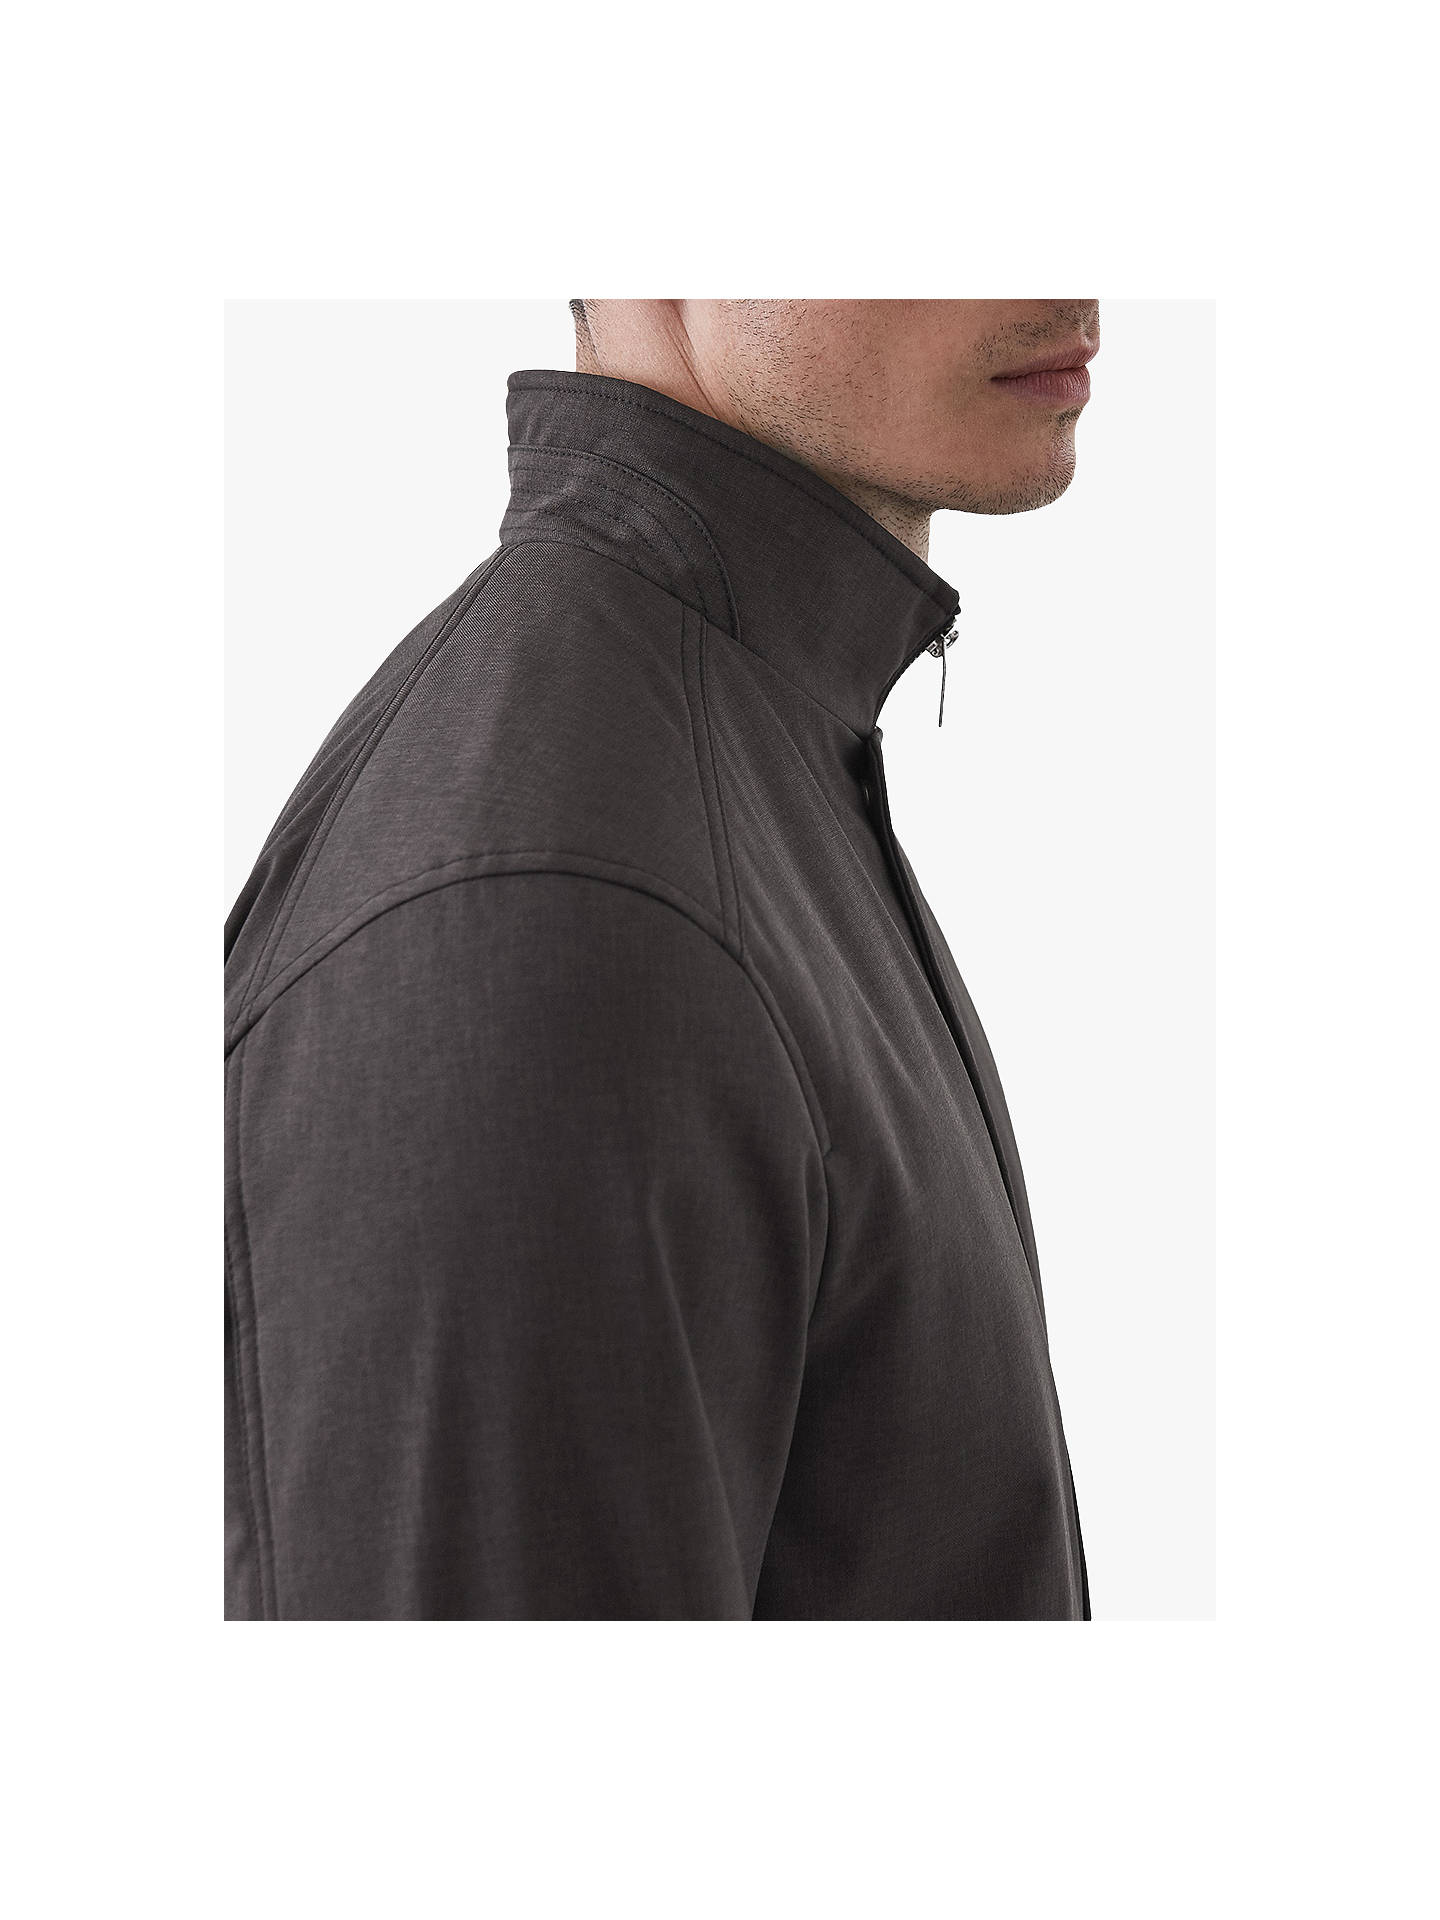 BuyReiss Heath Tech Zip Through Jacket, Grey, S Online at johnlewis.com